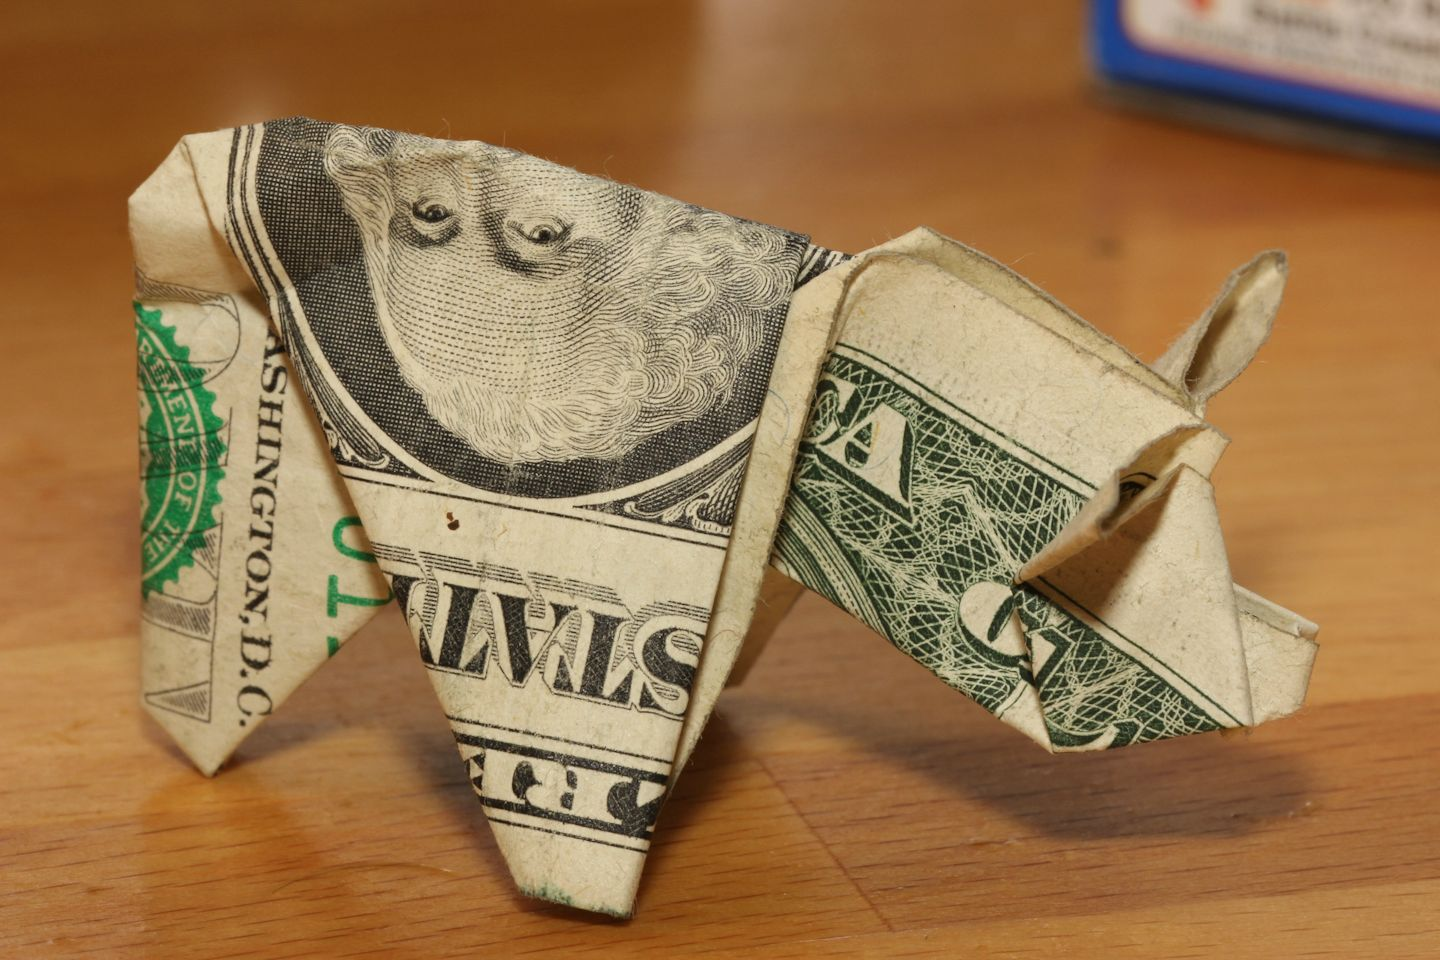 Man pays ticket with 137 origami pigs made from dollar bills - photo#36